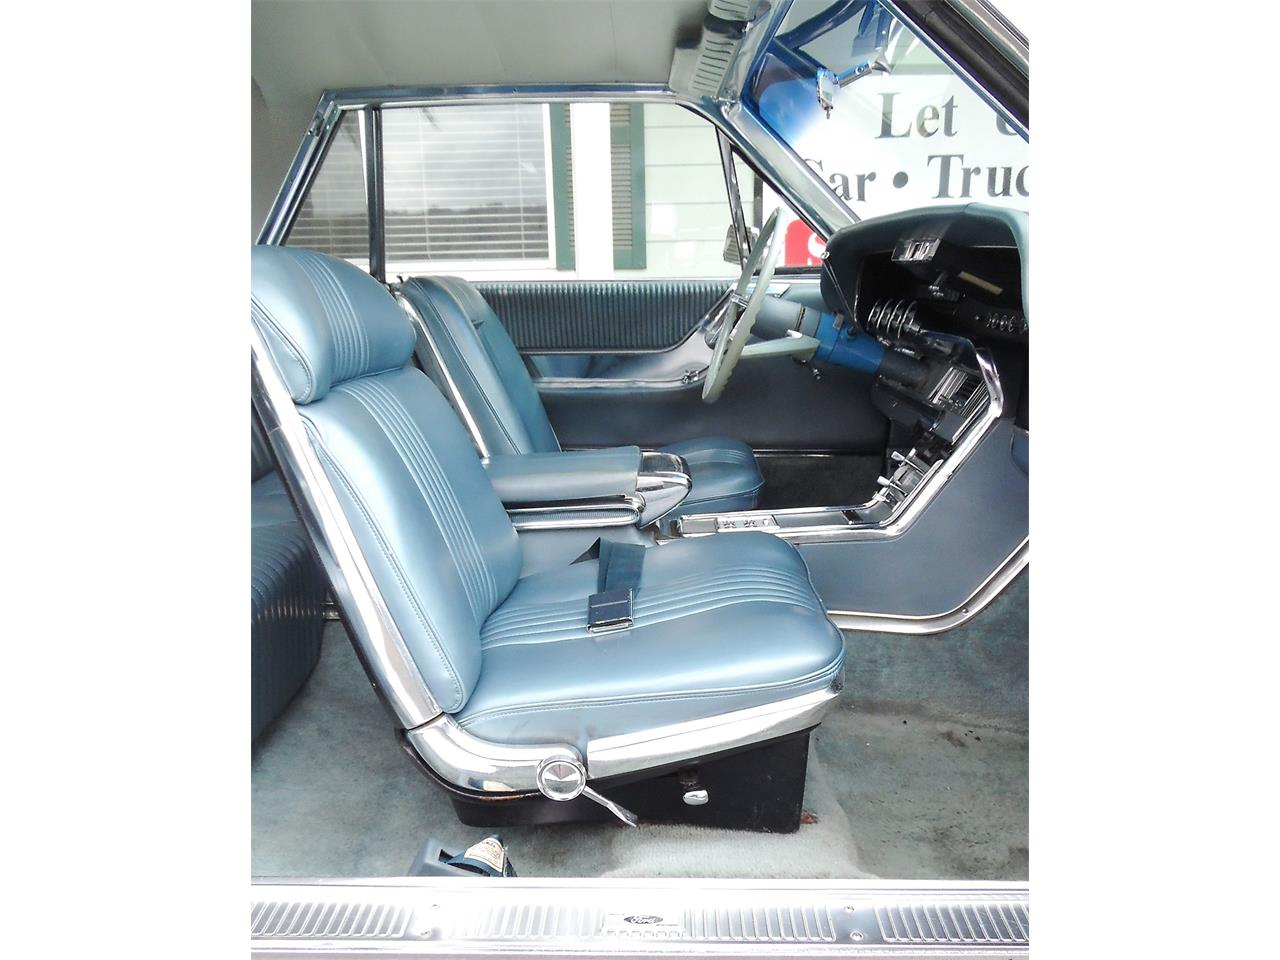 Large Picture of Classic '64 Ford Thunderbird located in California - $10,995.00 - MS7L